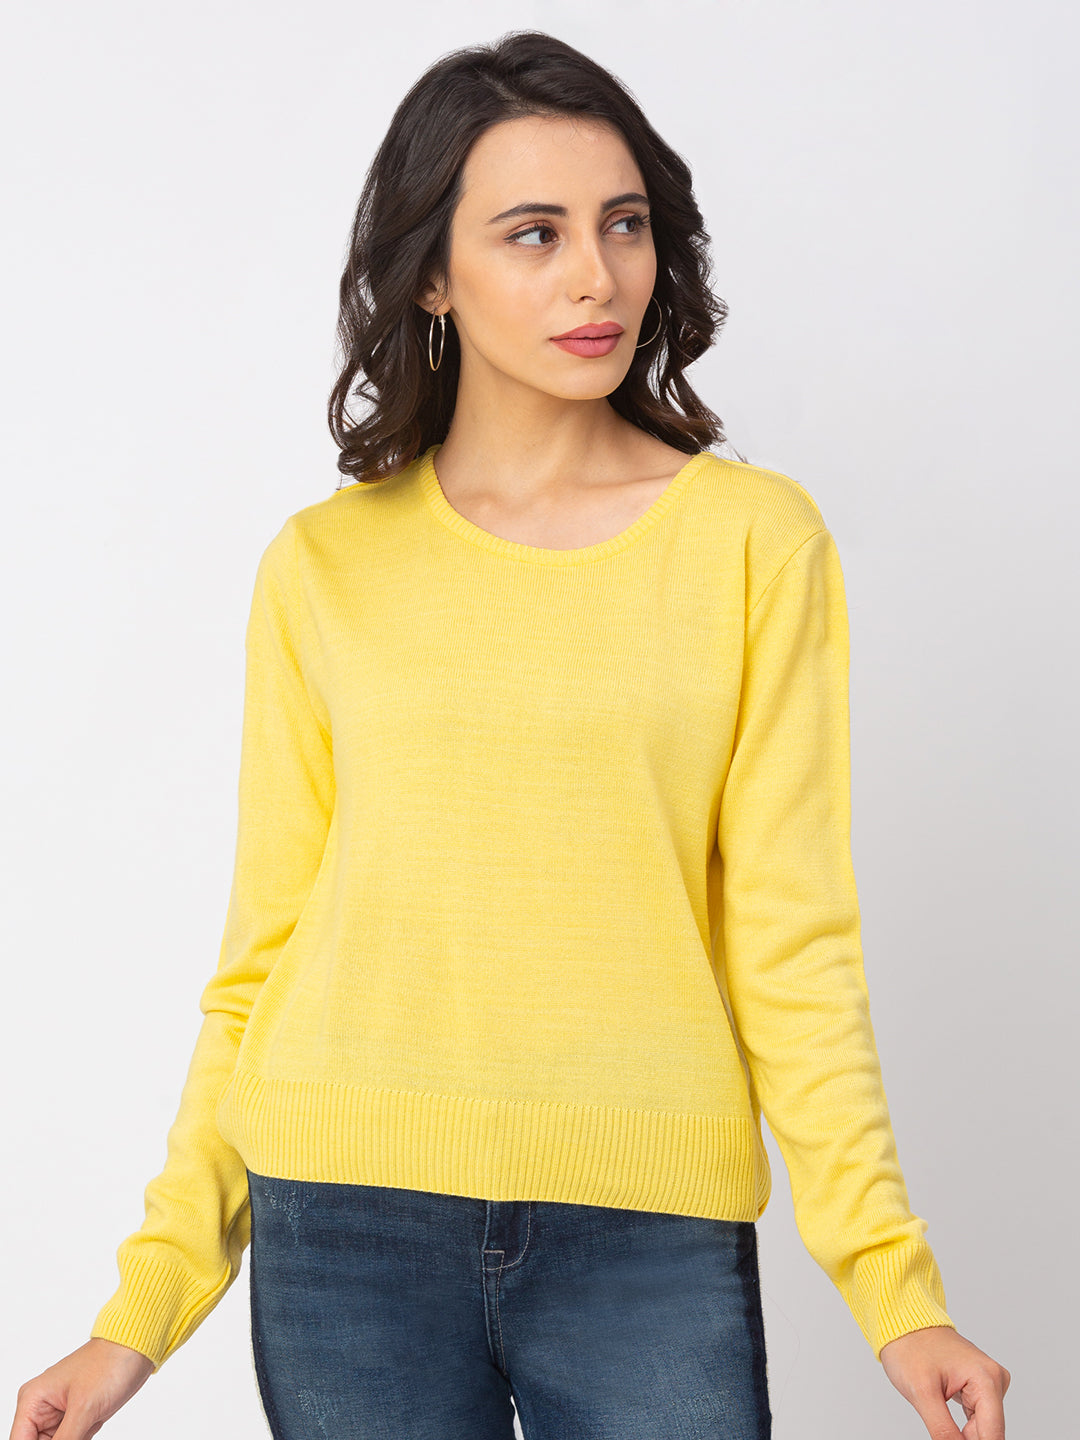 Globus Lemon Yellow Solid Sweater-1